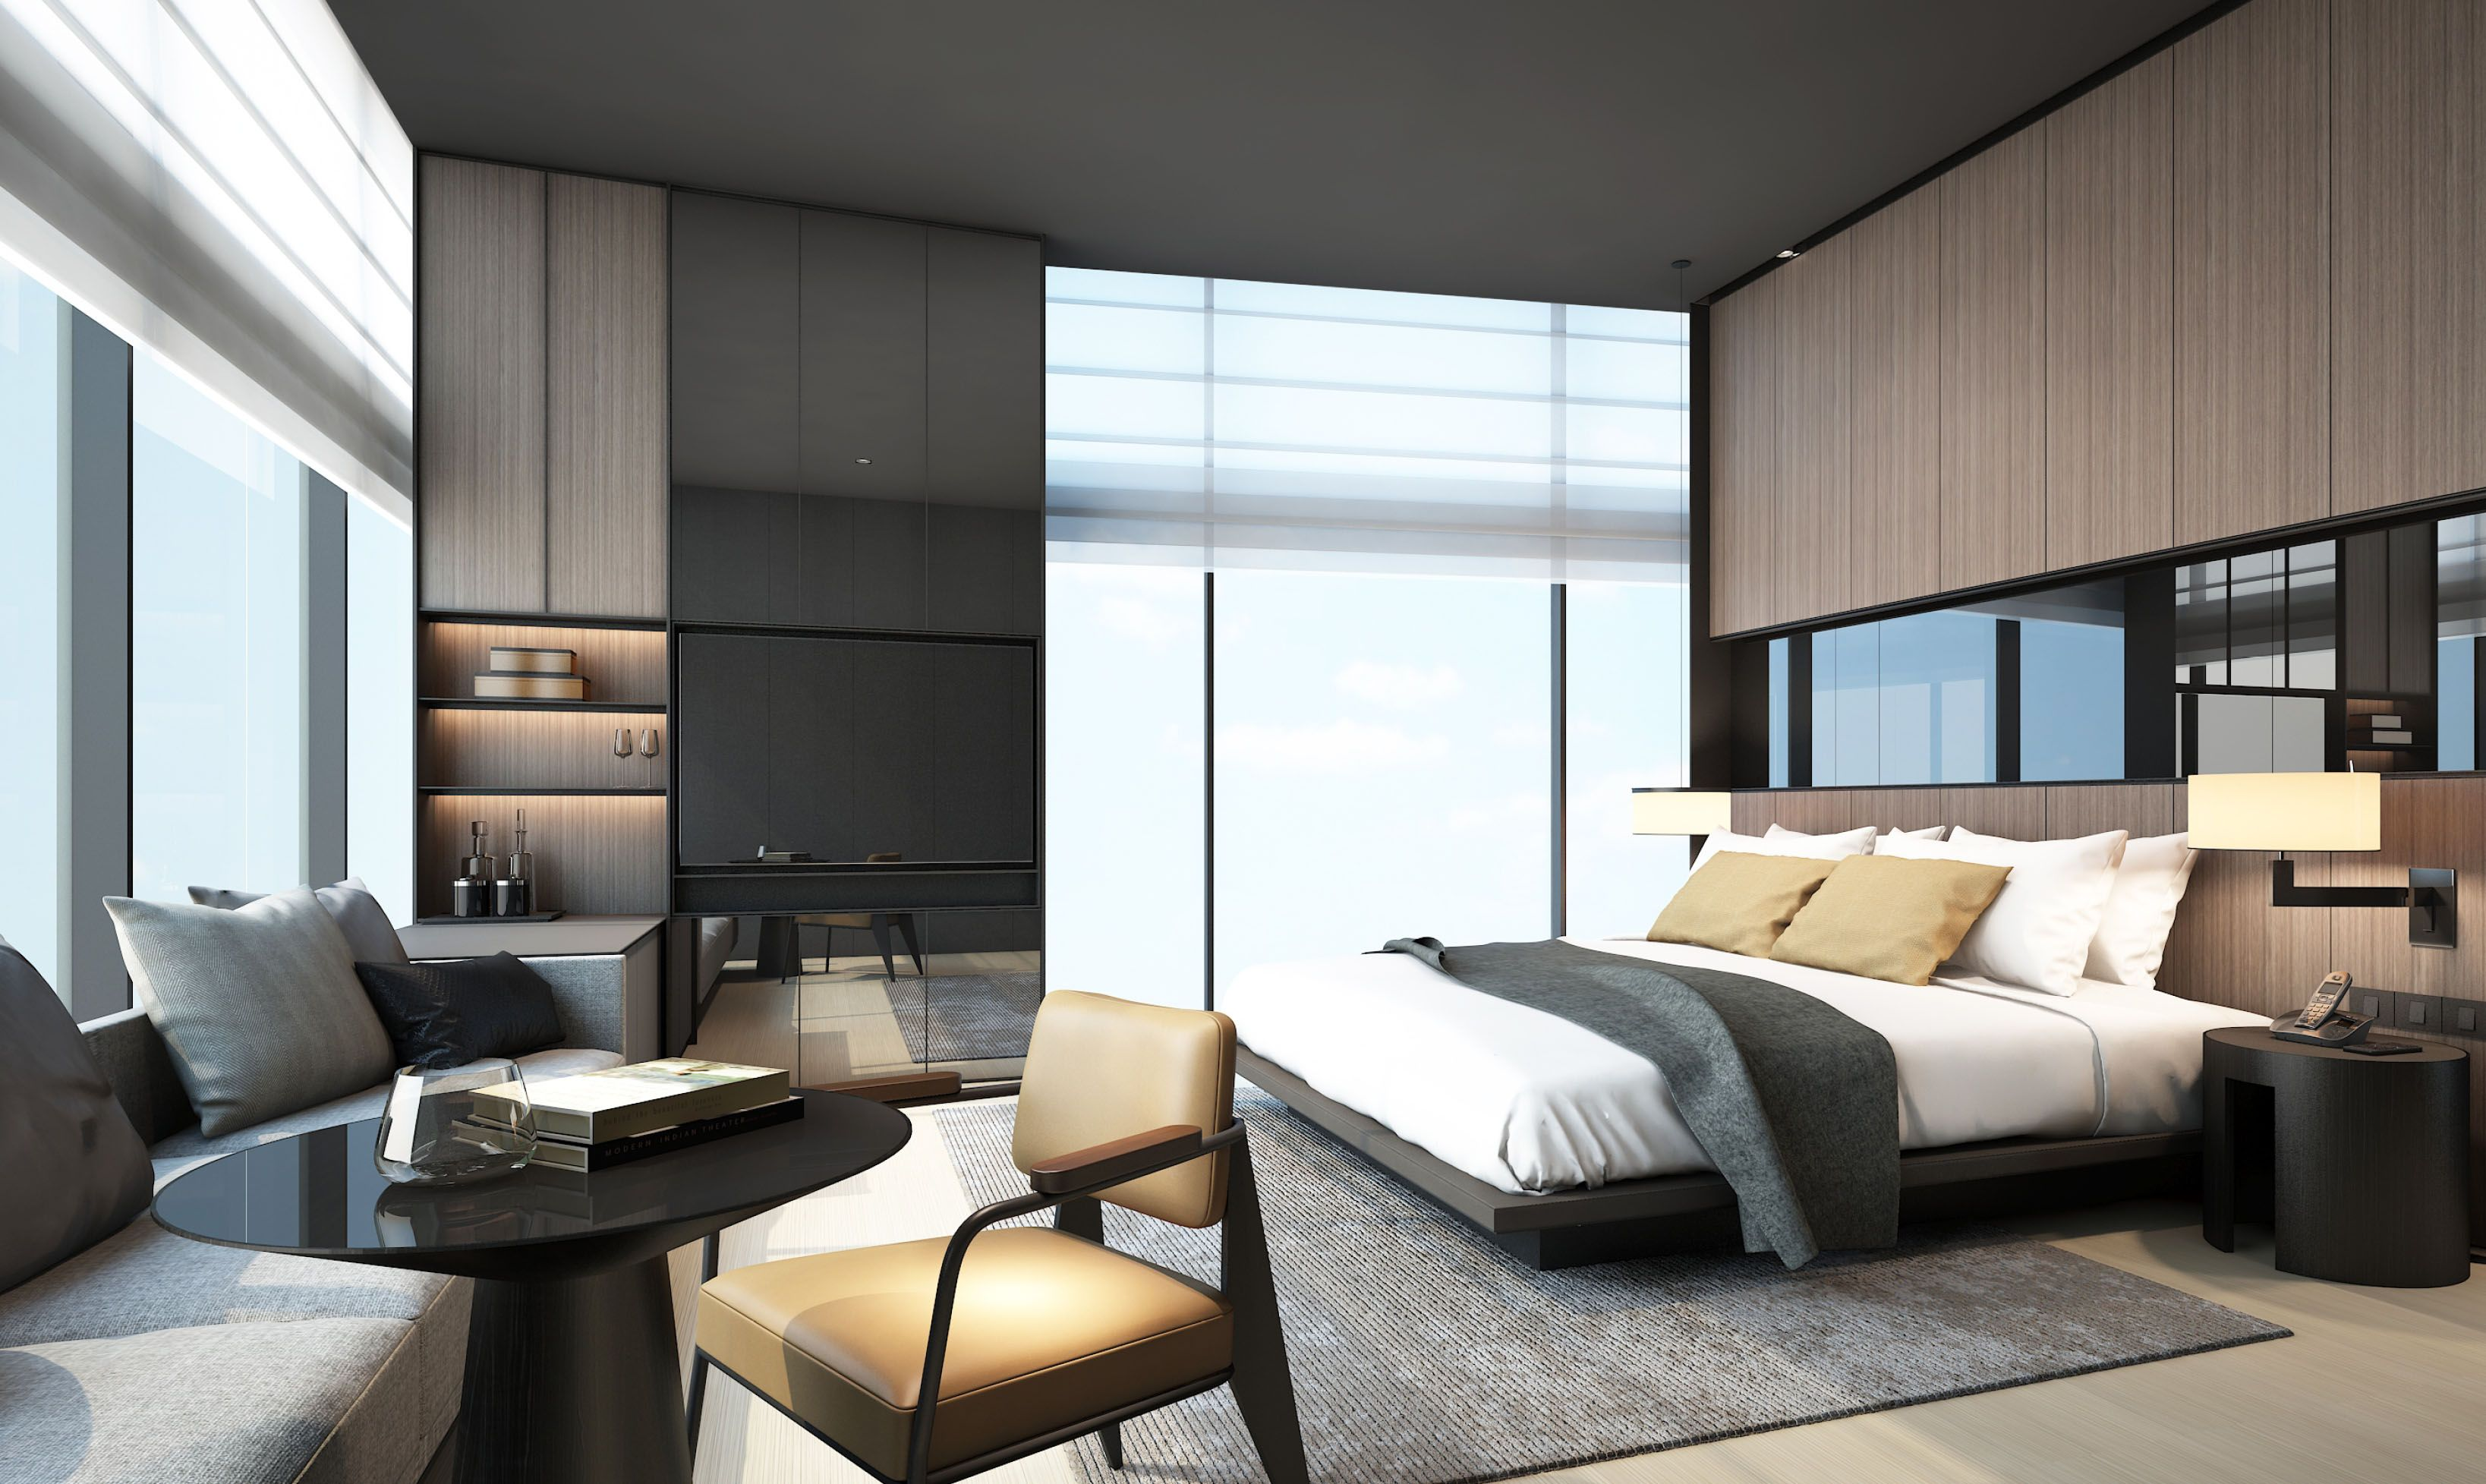 Scda hotel development singapore suites scda for Contemporary guest bedroom ideas